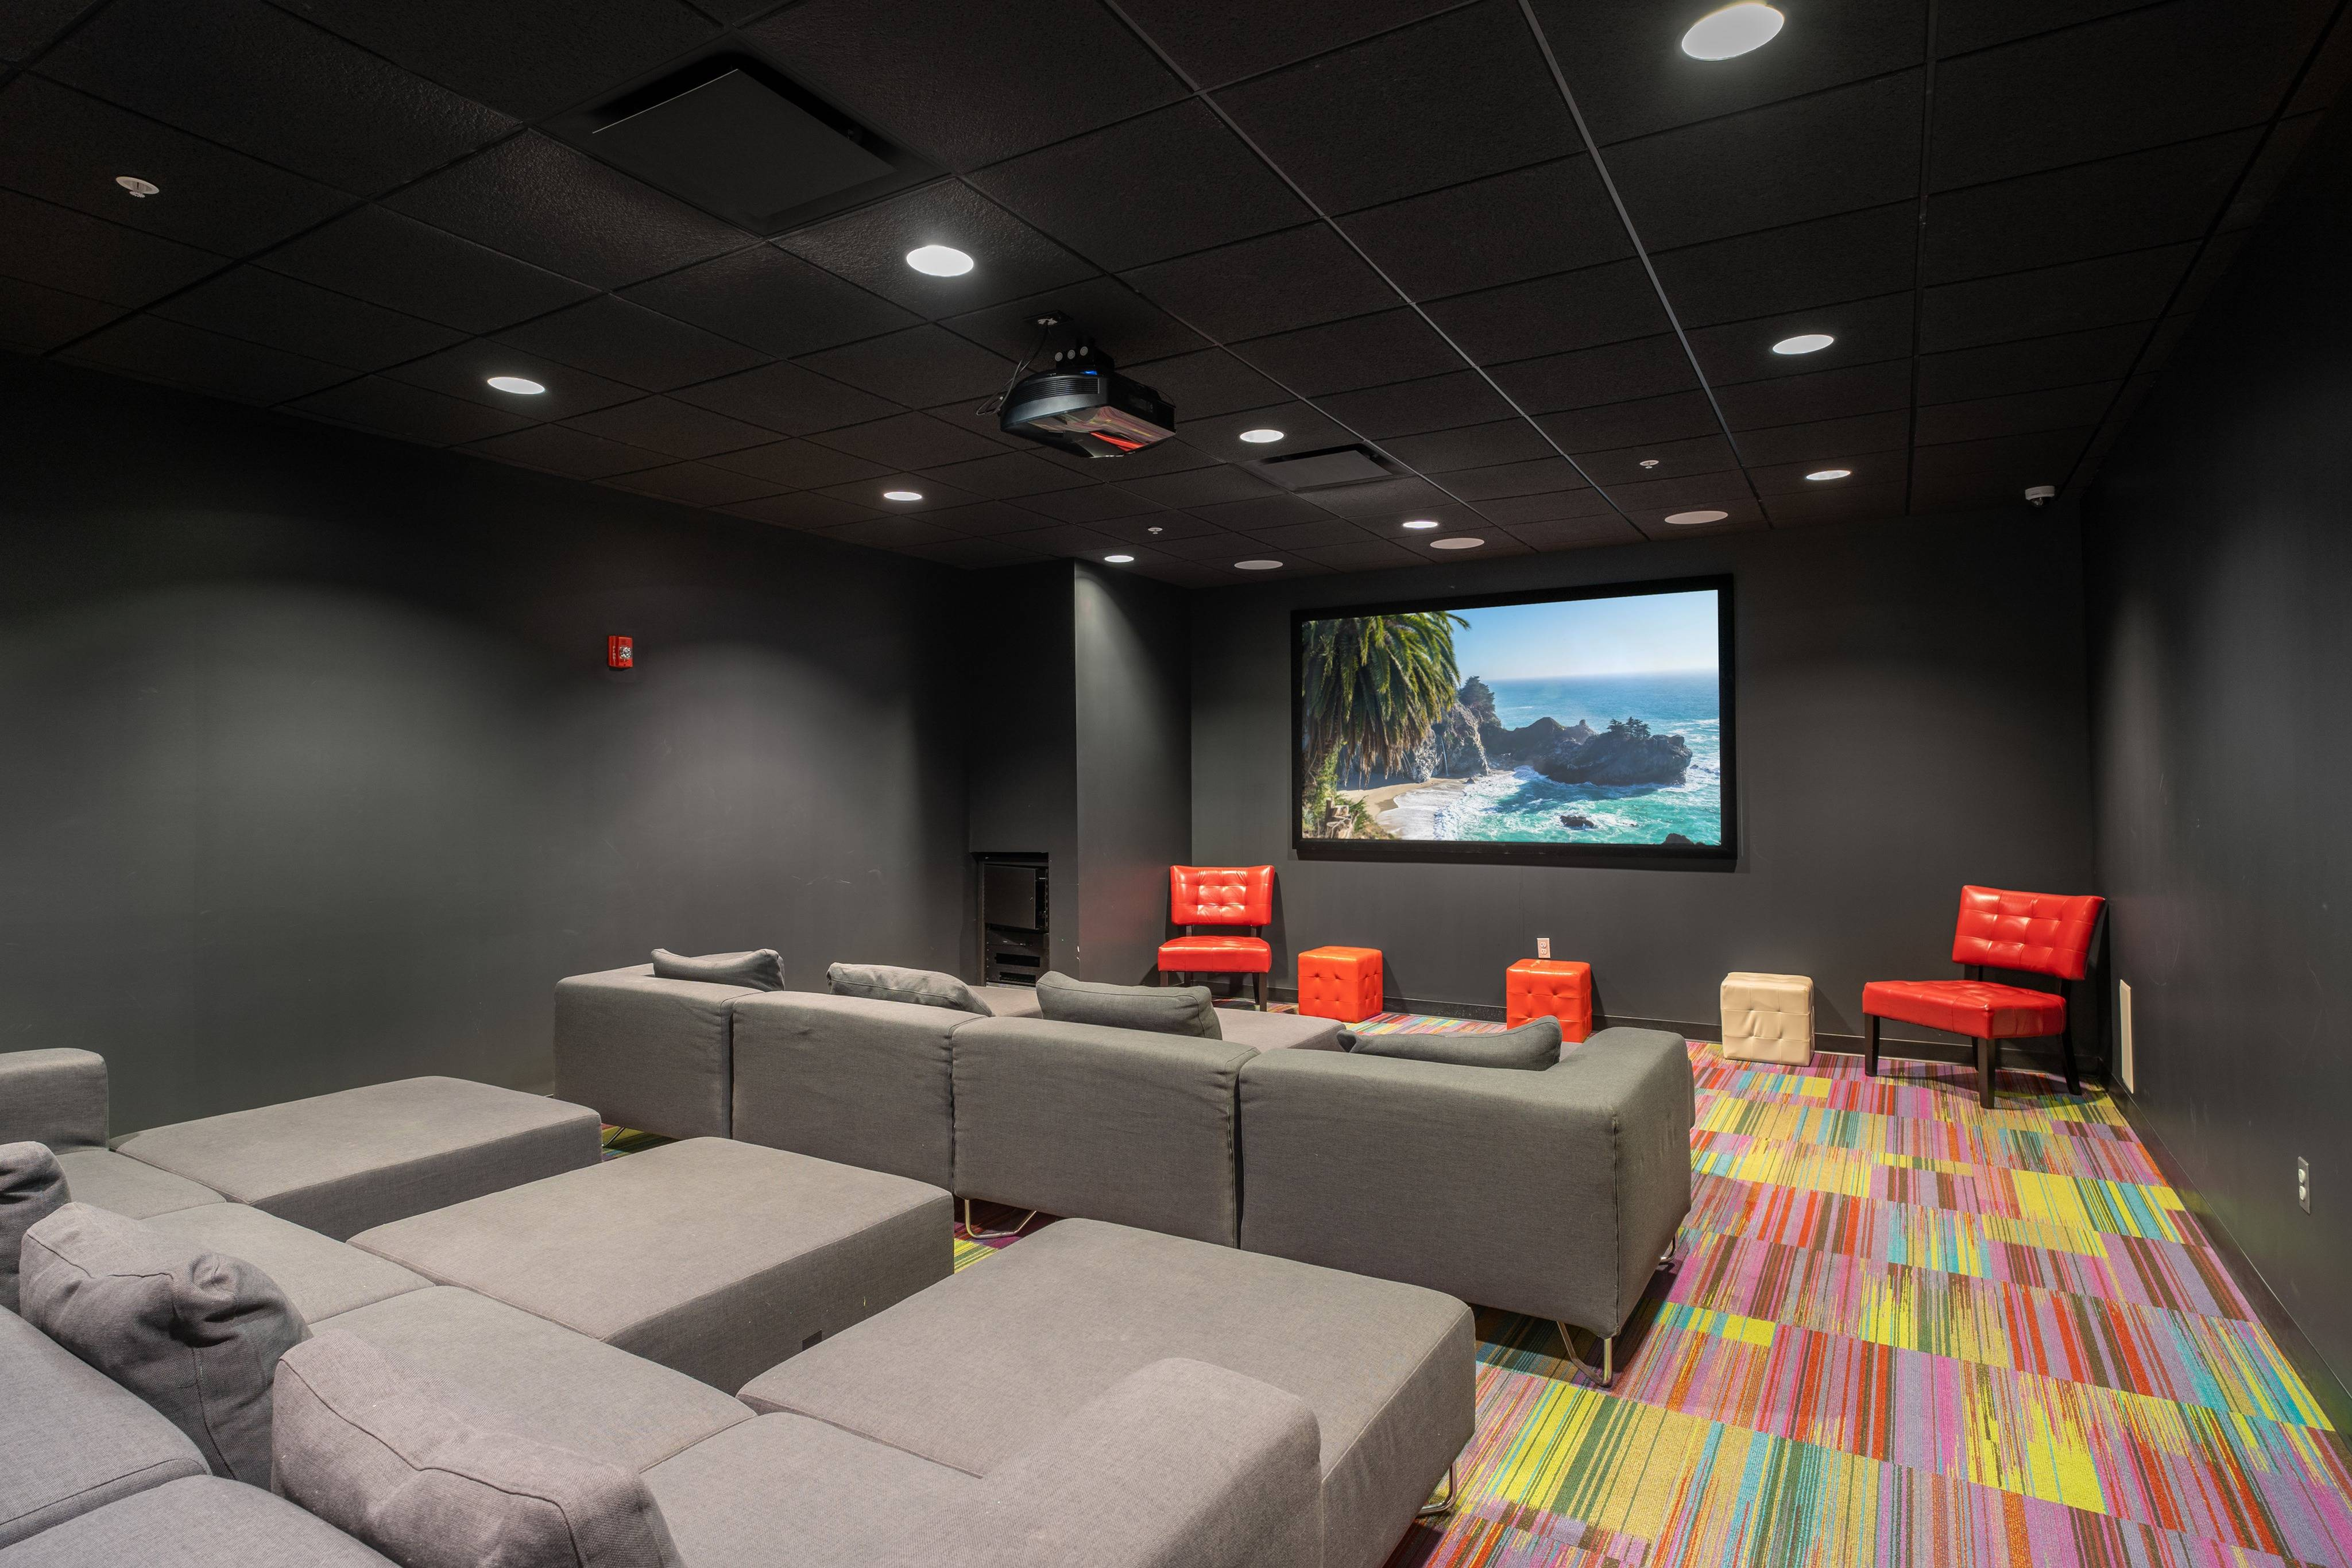 District Flats Apartments Lifestyle - Movie Theater